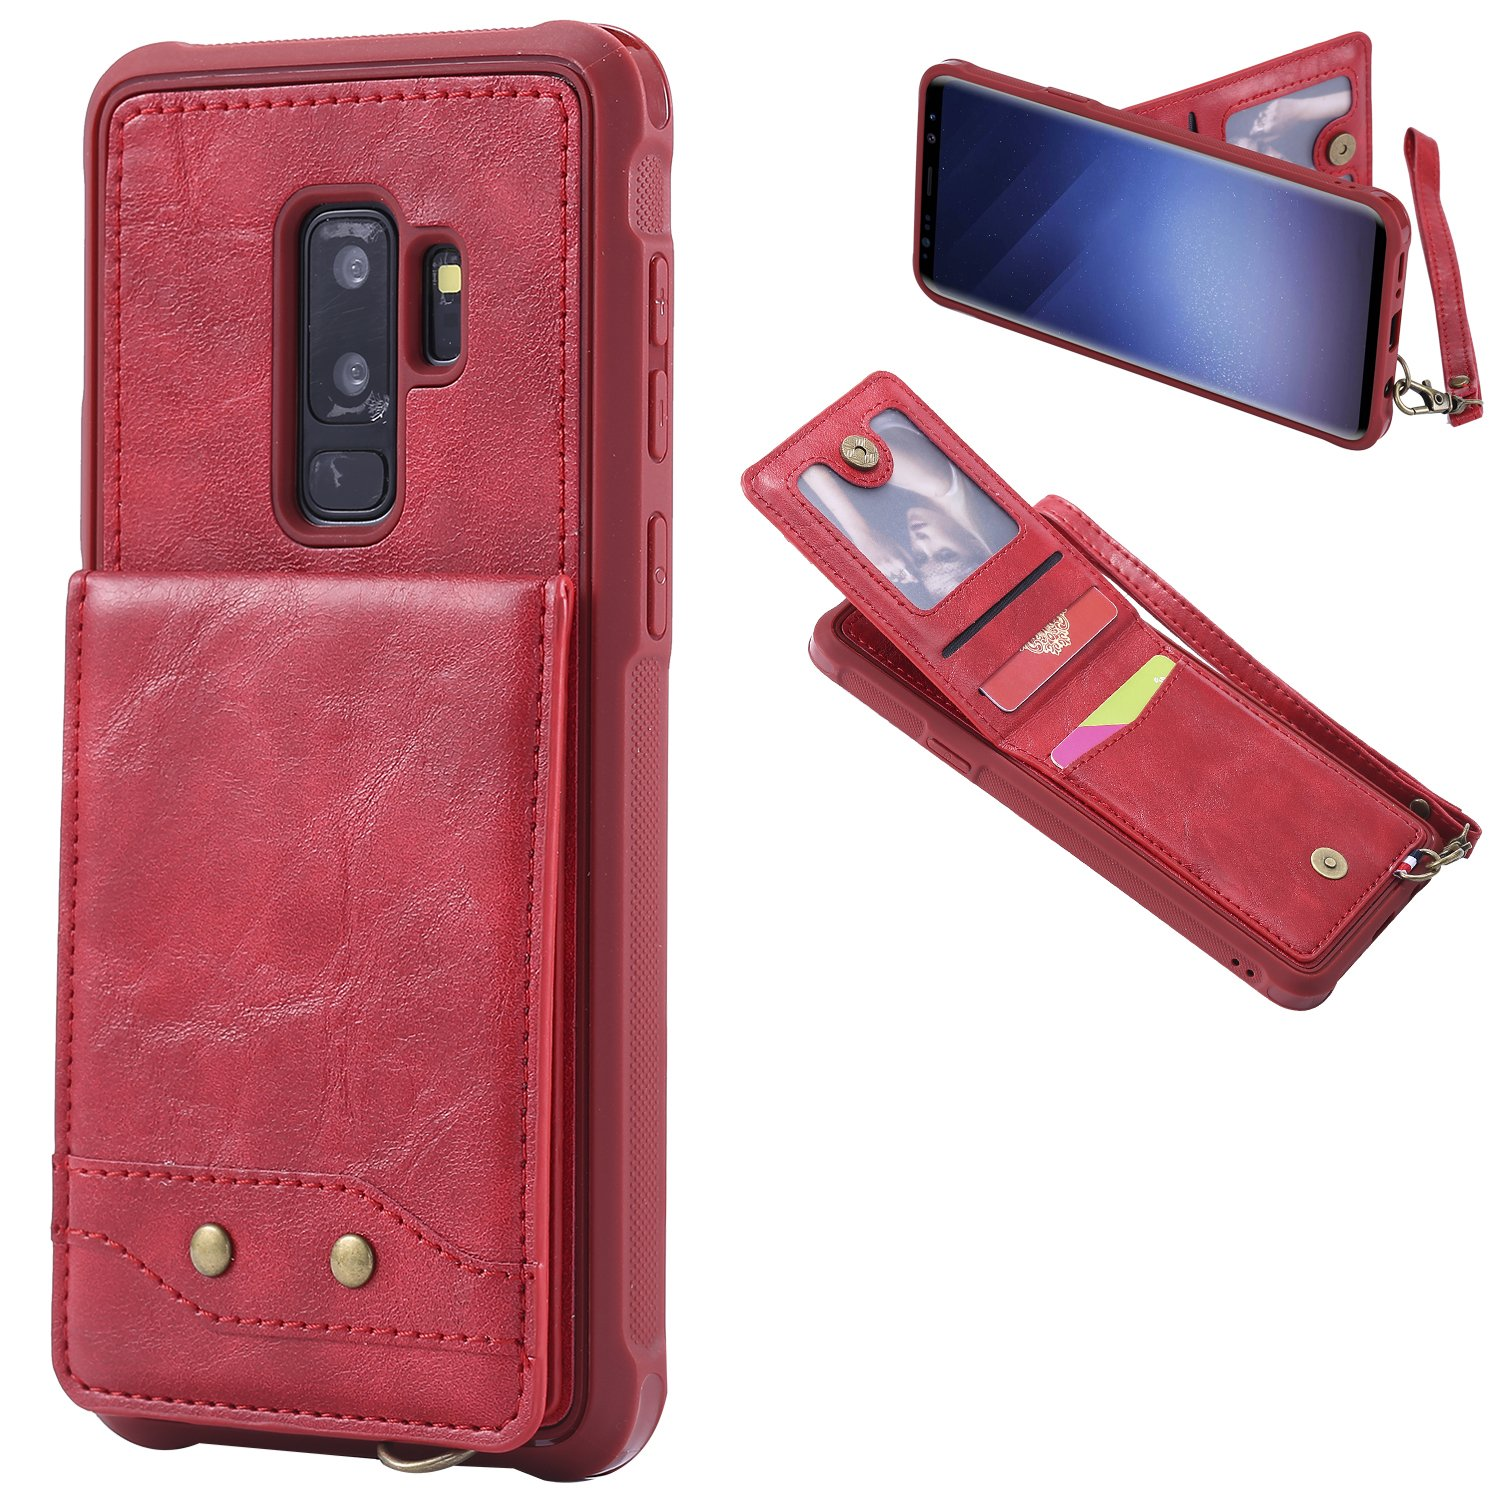 DAMONDY S9 Plus Case, Luxury Wallet Purse Card Holders Design Cover Soft Shockproof Bumper Flip Leather Kickstand Magnetic Clasp With Wrist Strap Case for Samsung Galaxy S9 Plus 2018-red